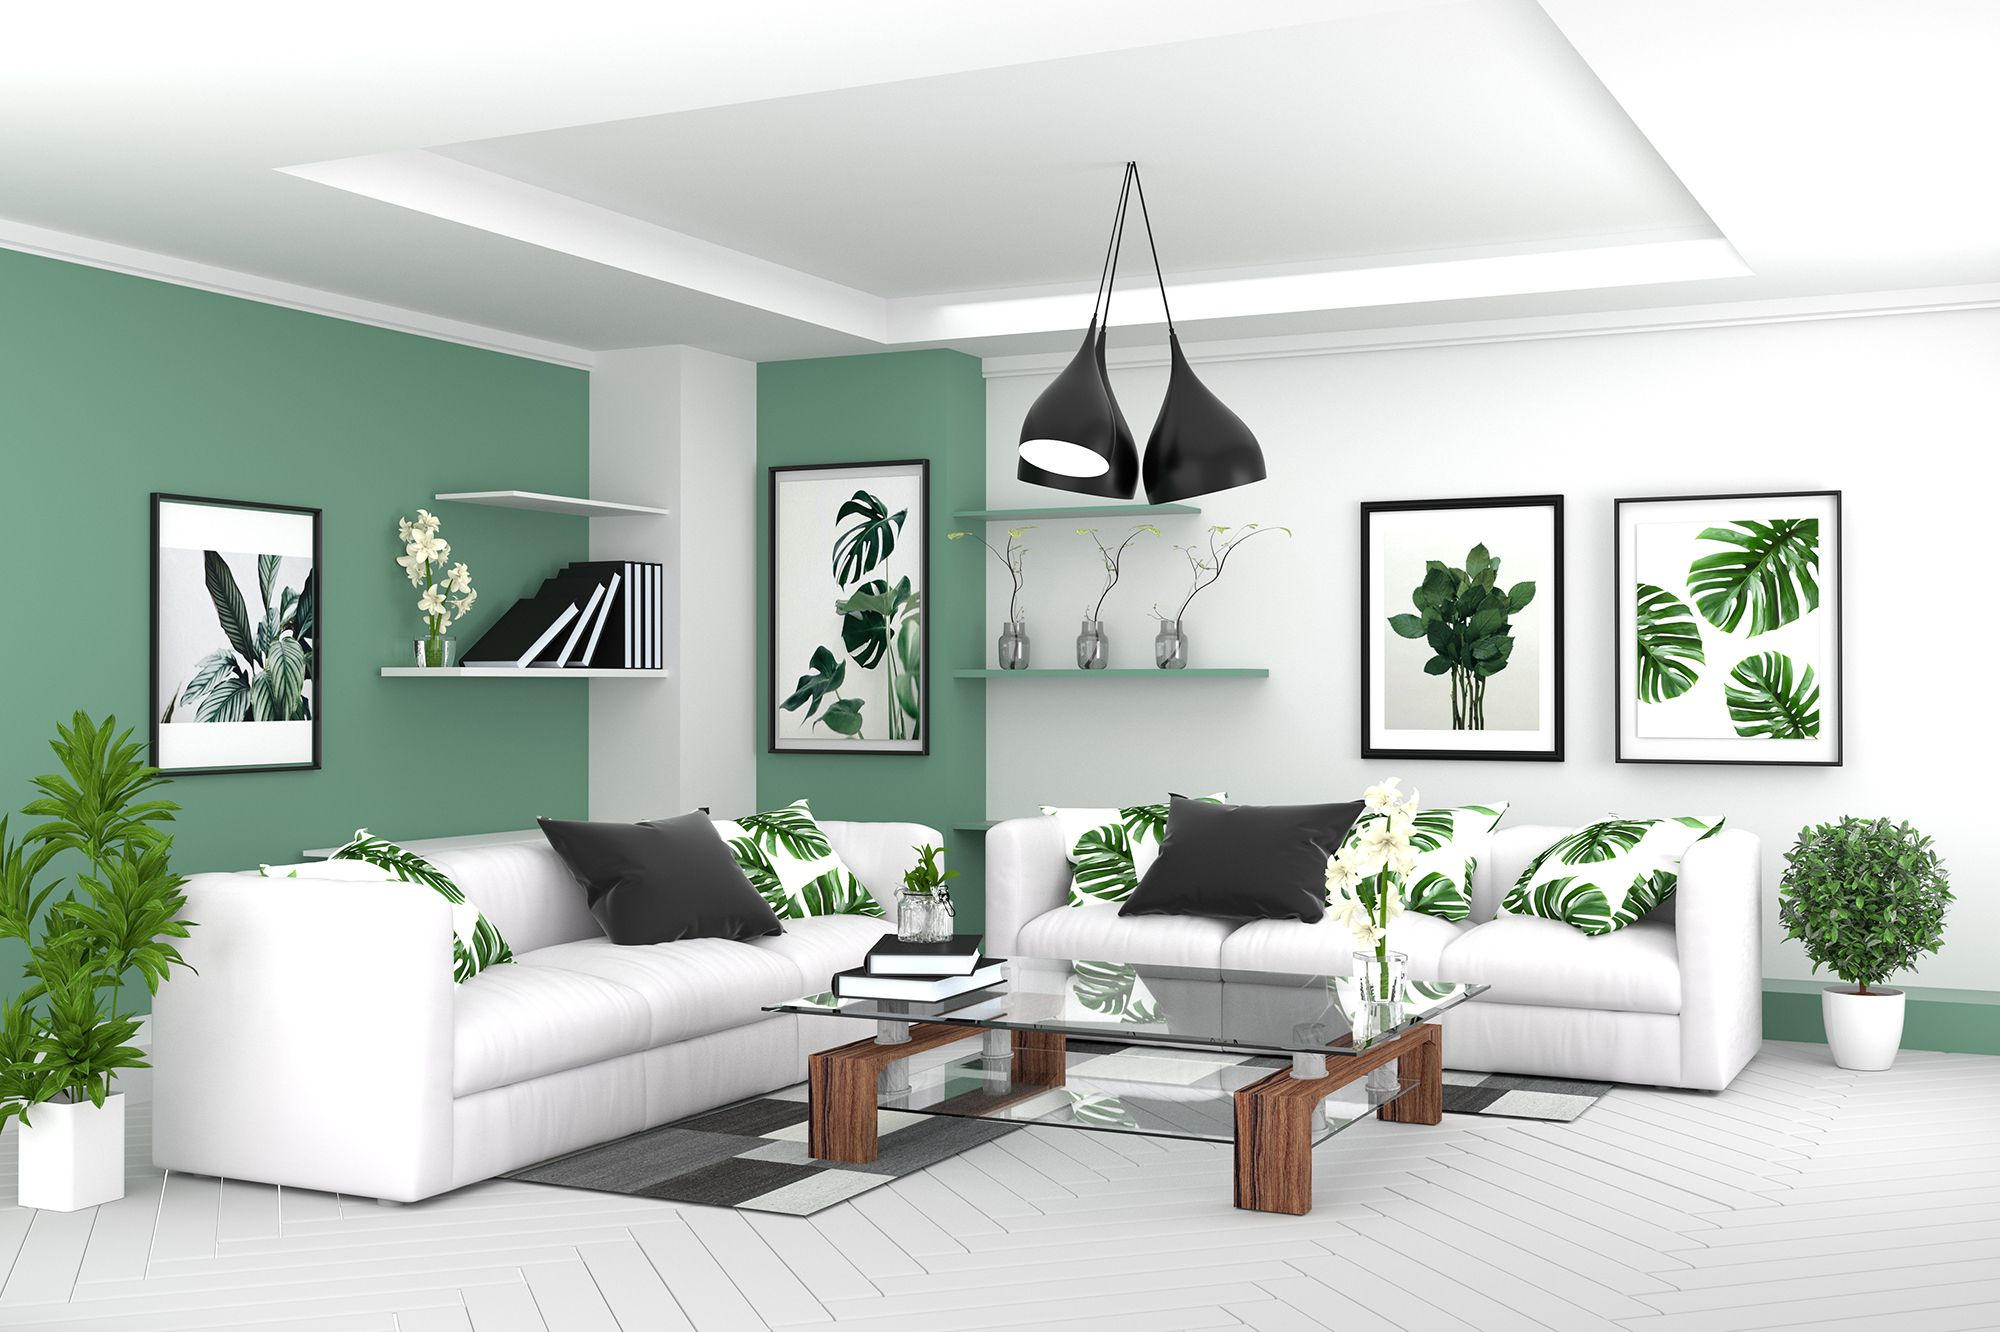 Living Room Interior Room Modern Tropical Style With Composition Minima Tropical Interior Design Living Rooms Tropical Interior Design Tropical Living Room